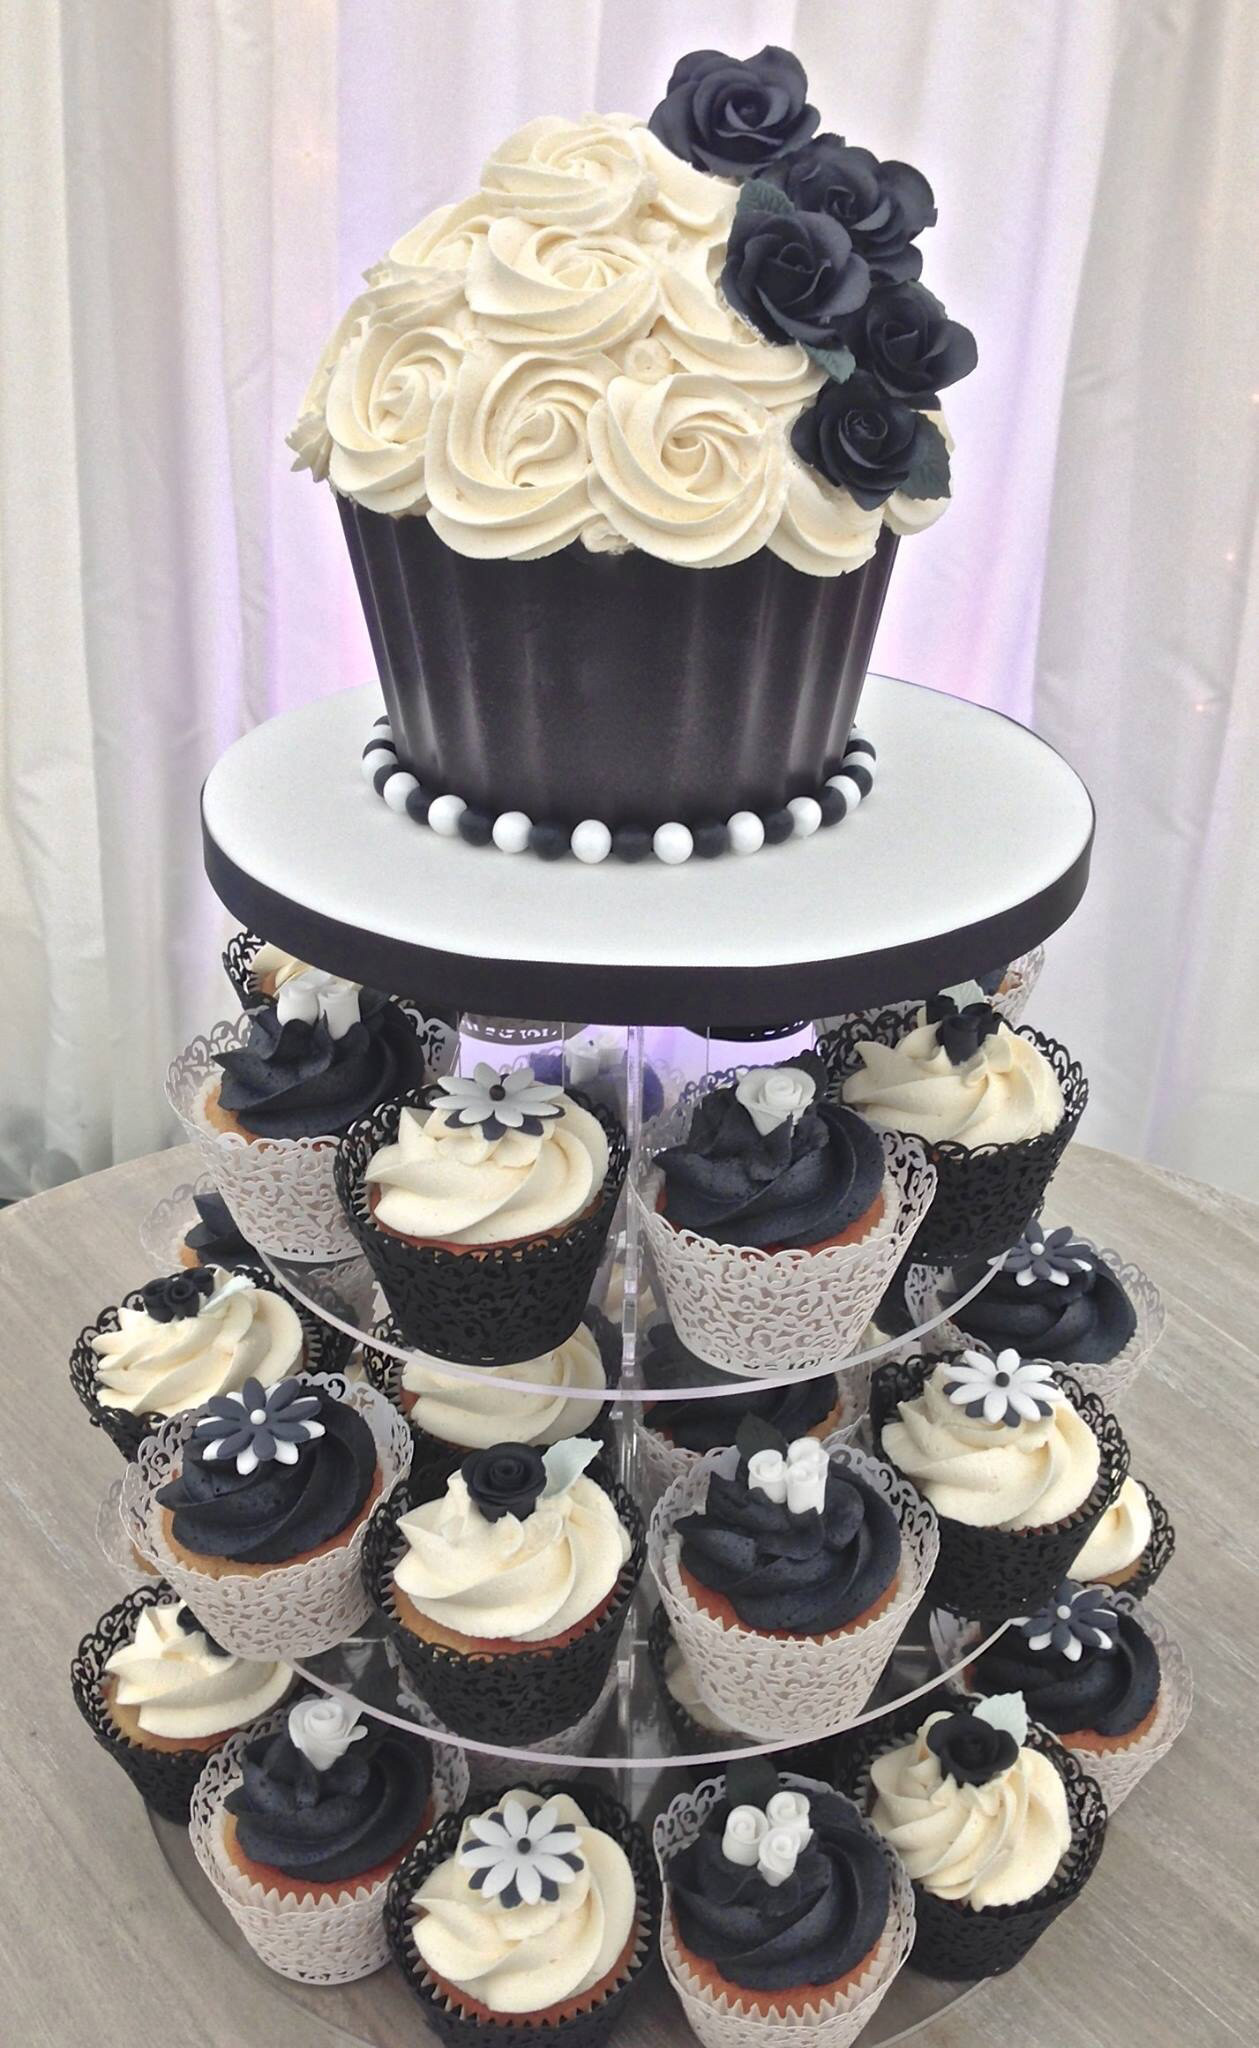 White Wedding Cupcakes  White Wedding Cake Cupcakes